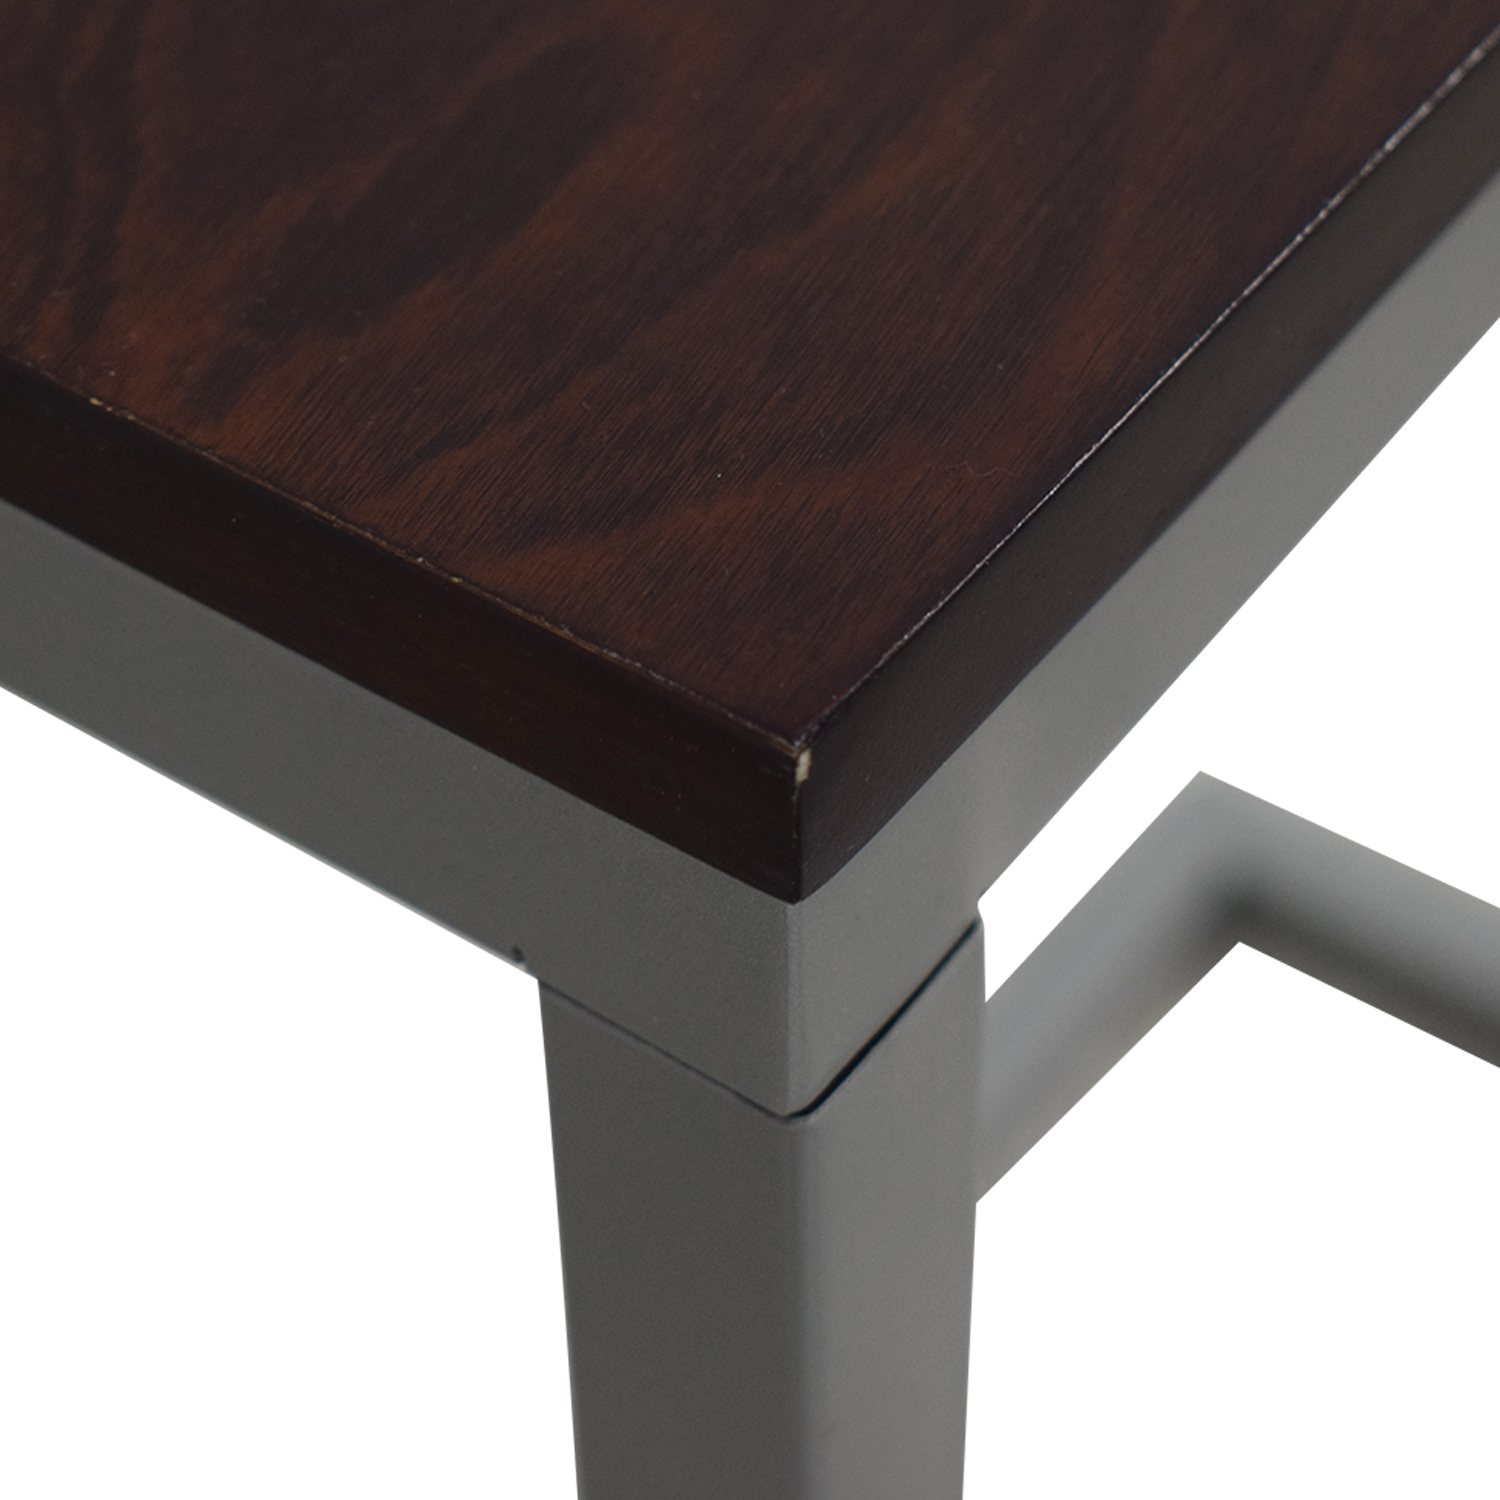 West Elm C-Shaped End Table / End Tables